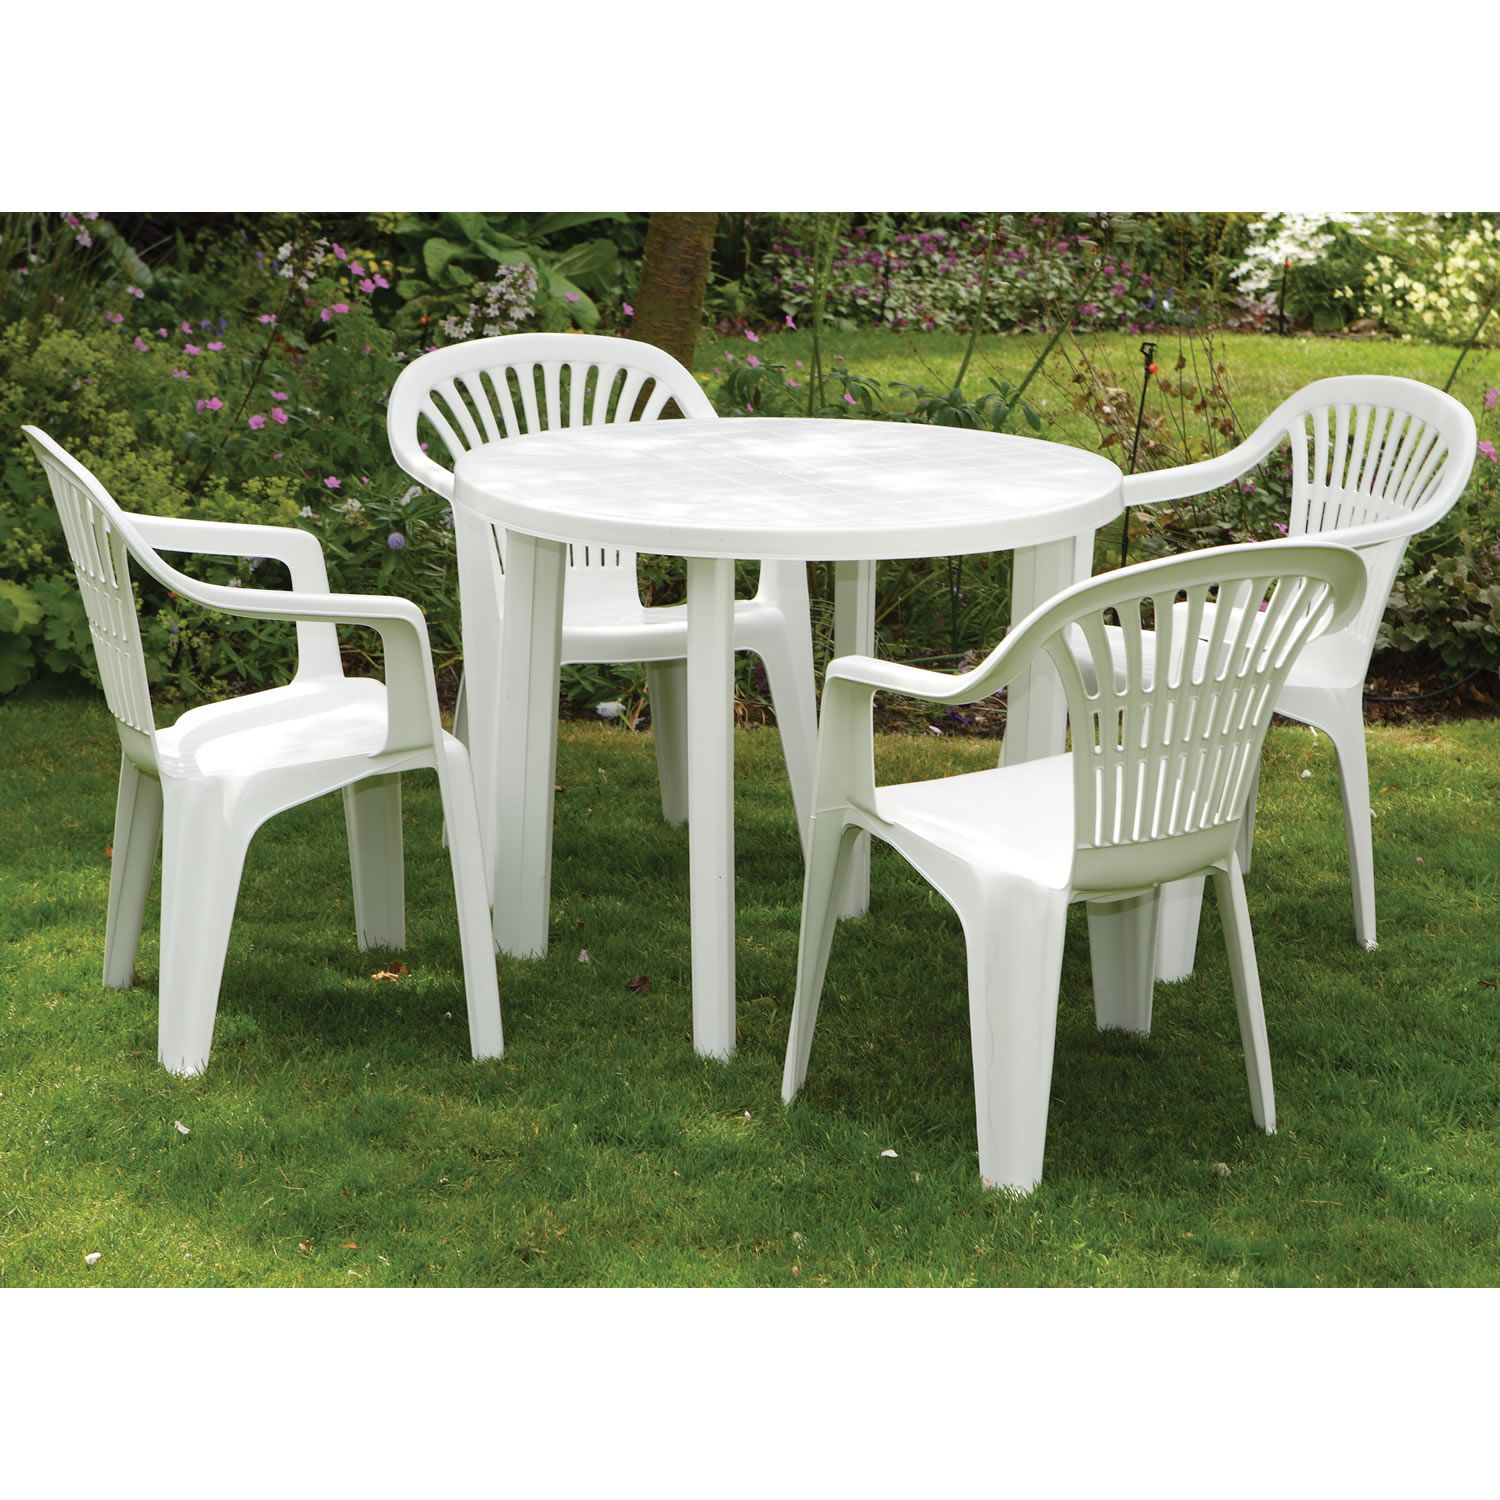 Plastic Garden Furniture Cheap In Price And Easy To Maintain Cheap Plastic Garden Furni Outdoor Tables And Chairs Cheap Outdoor Chairs Best Outdoor Furniture